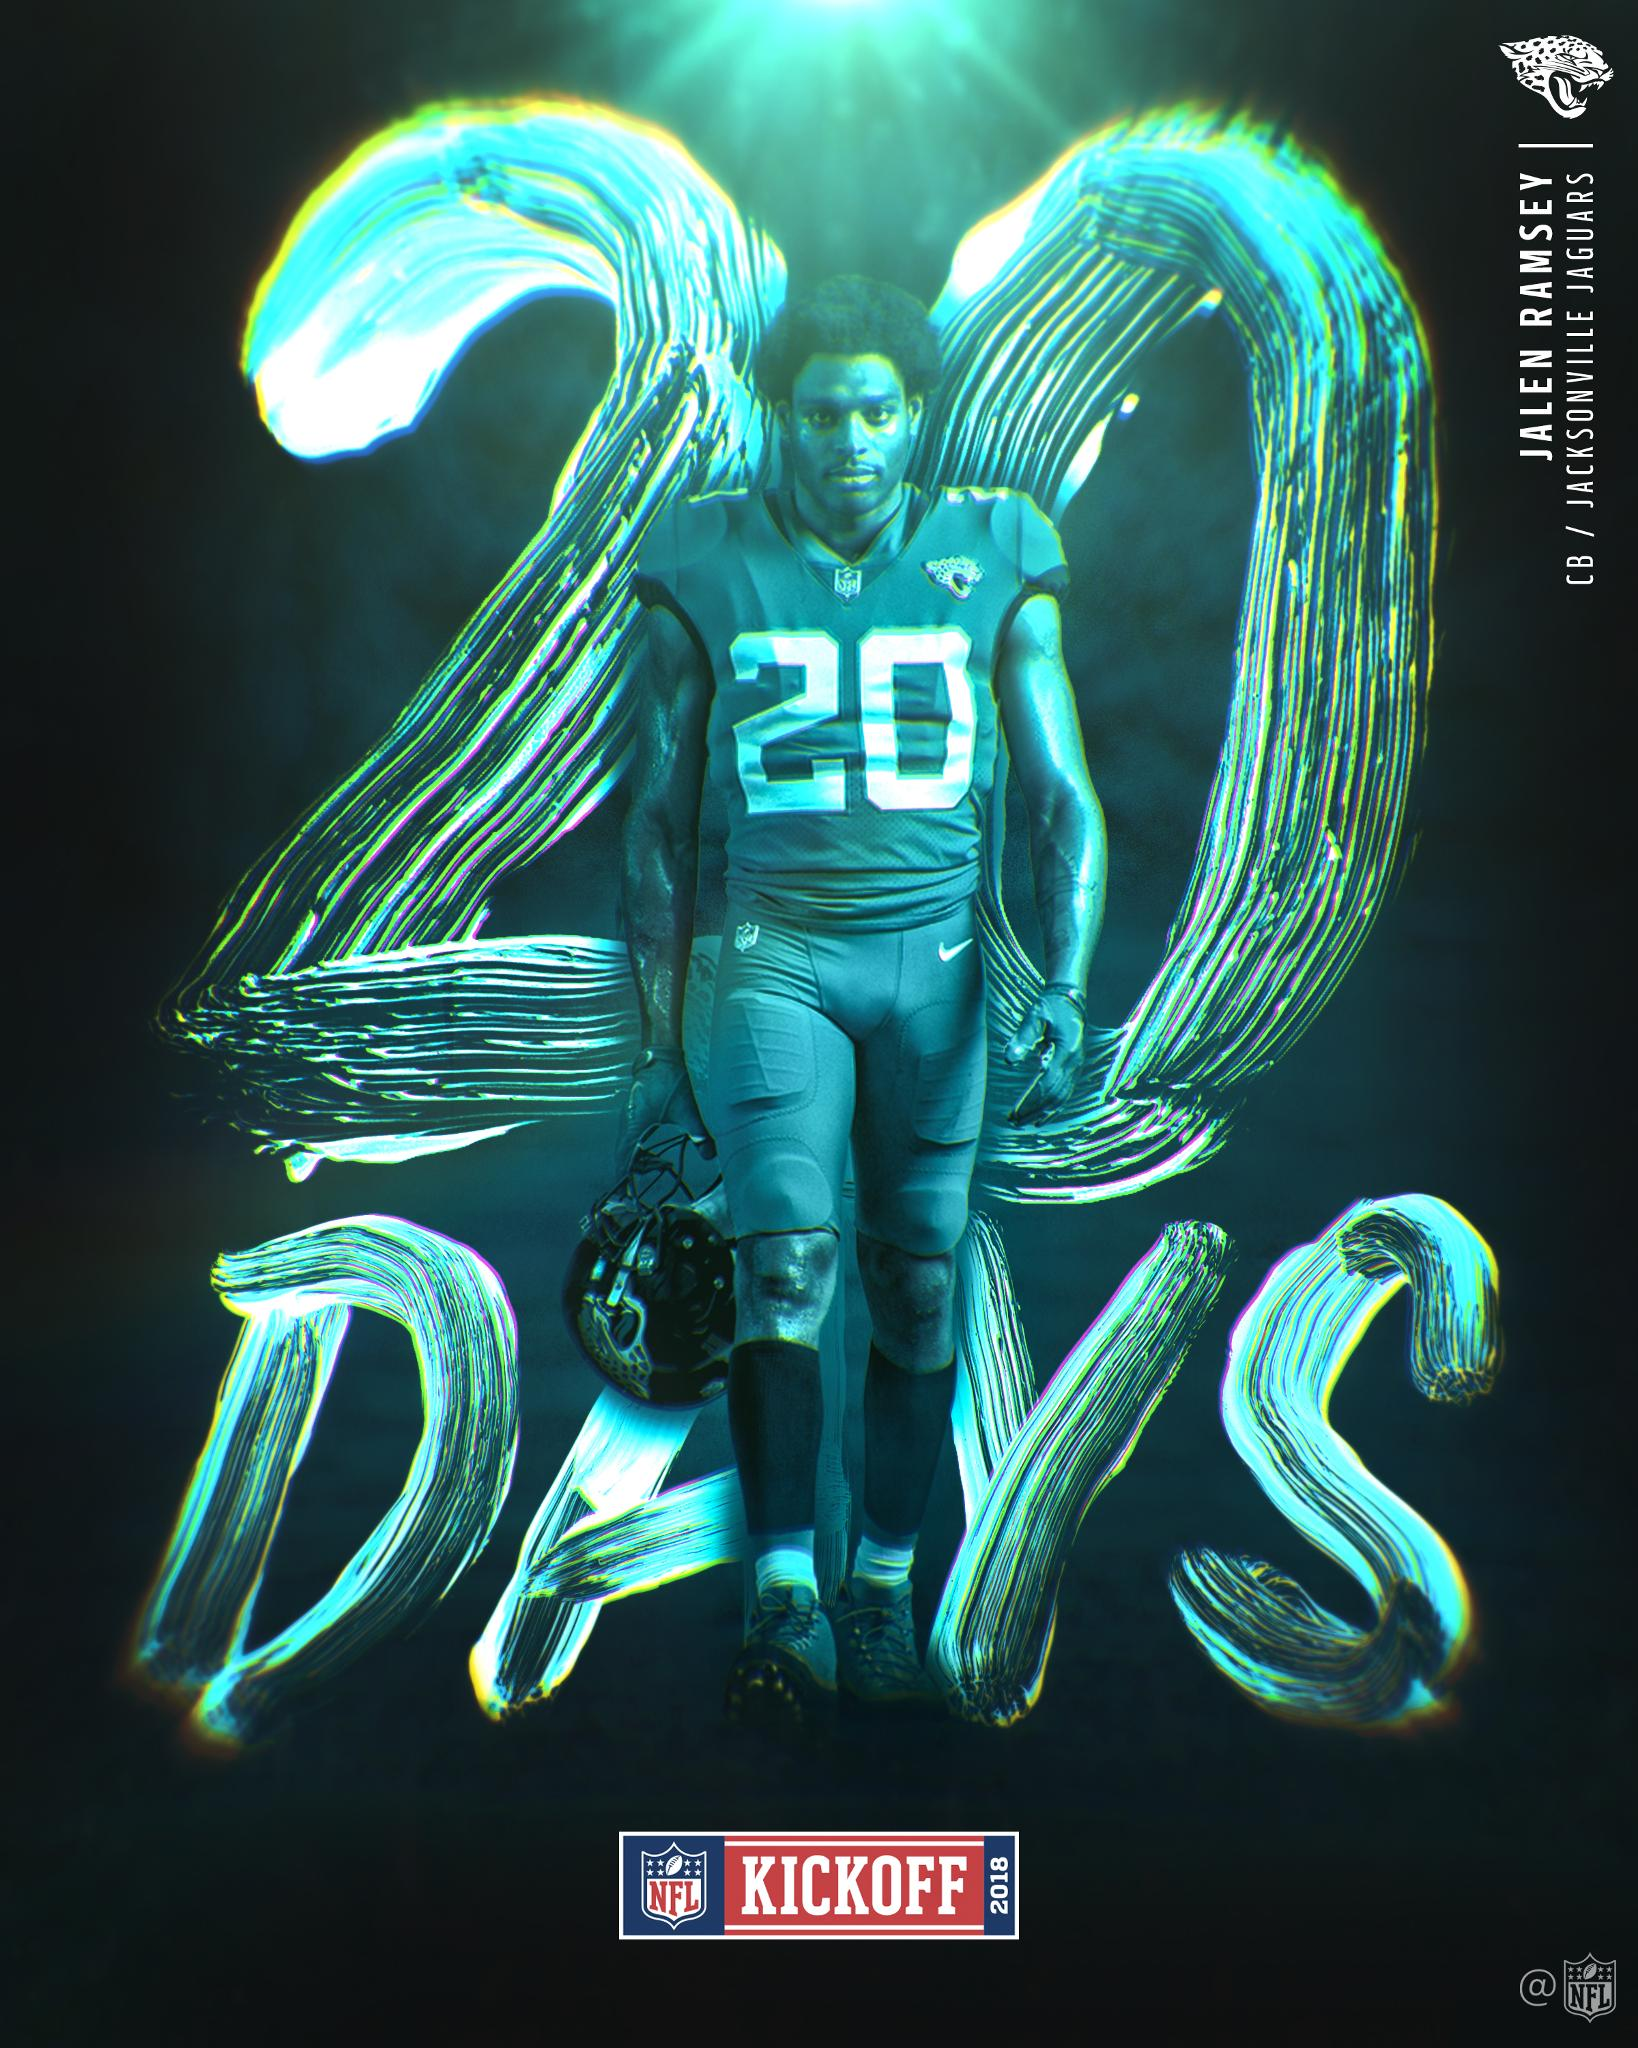 20 DAYS! #Kickoff2018 https://t.co/NZl9KT1iU7